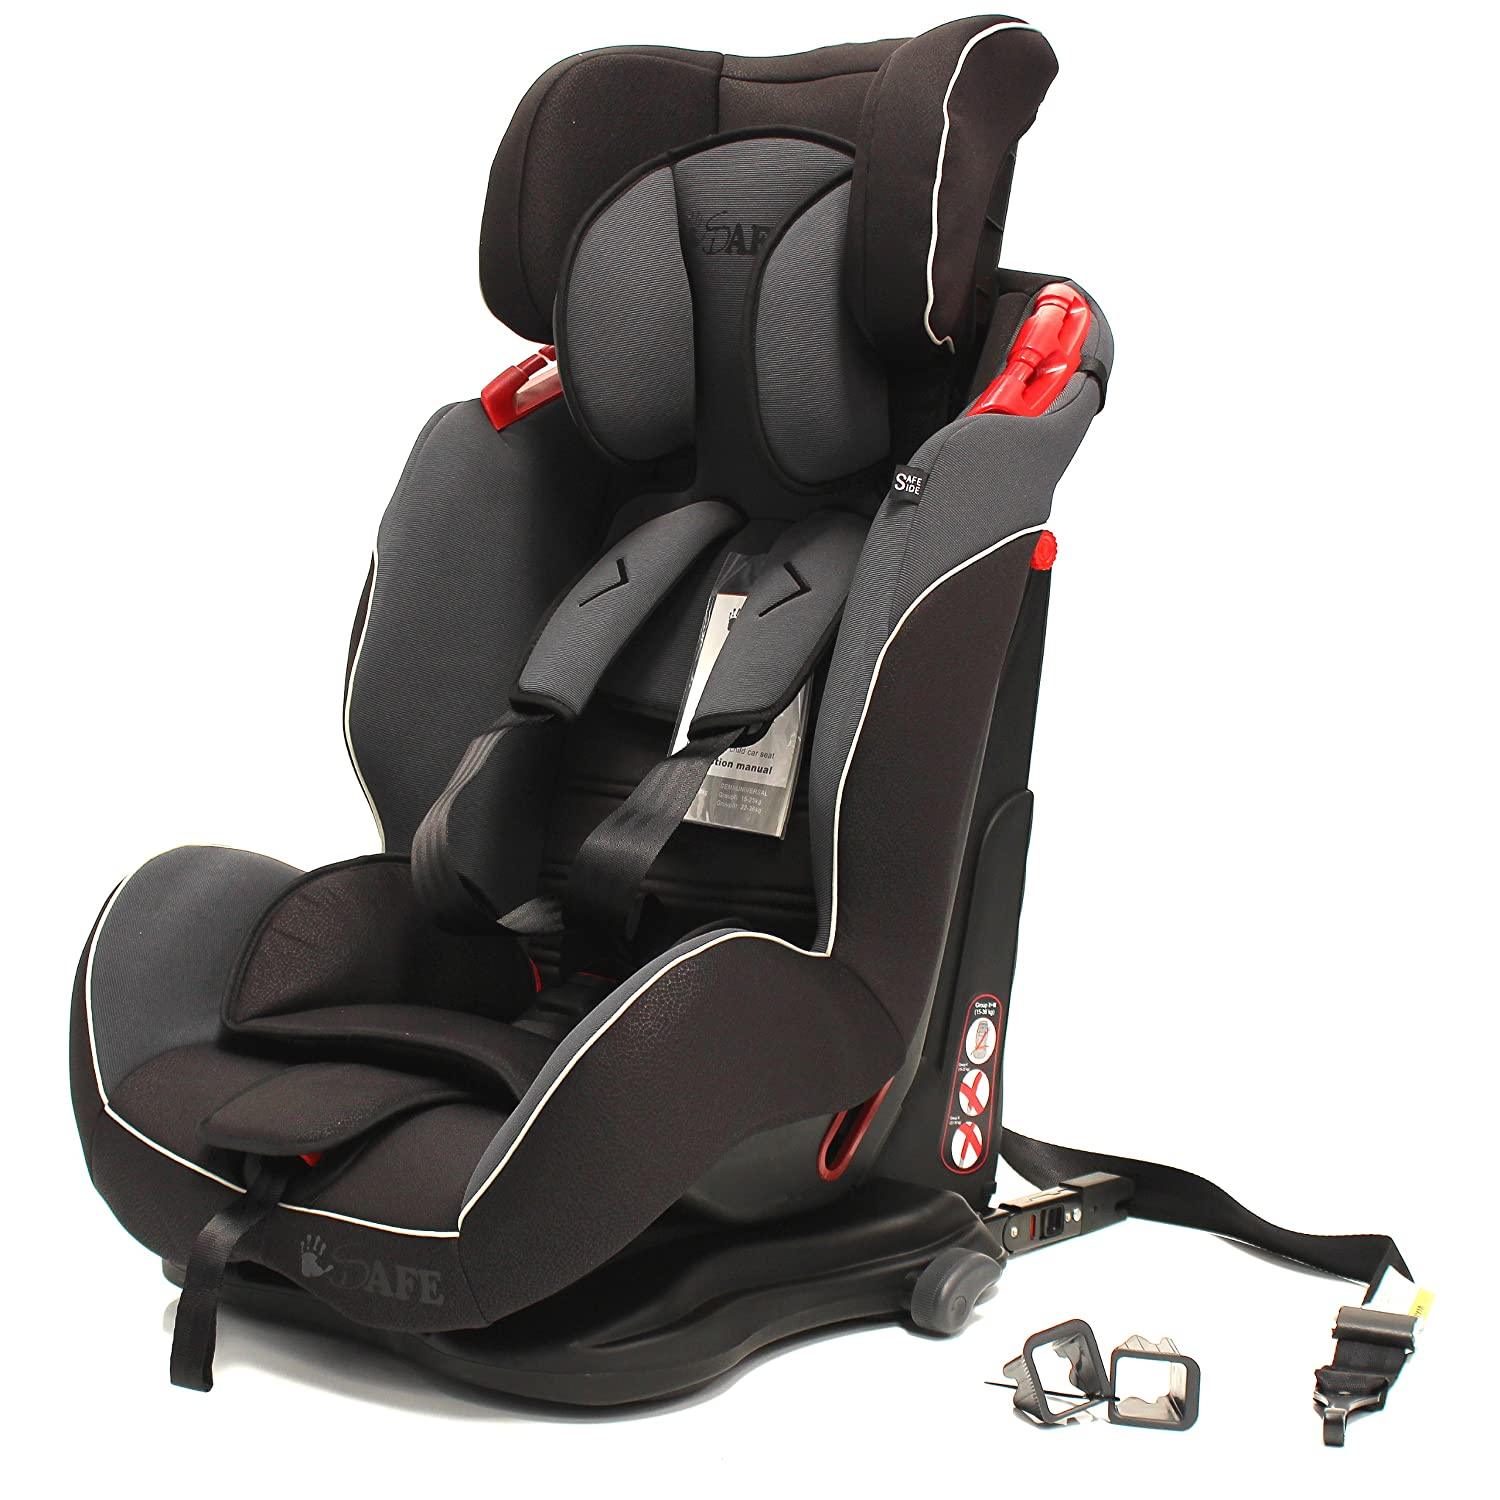 isafe isofix carseat group 1 2 3 recliner baby seat car seat 9 36kgs mocca. Black Bedroom Furniture Sets. Home Design Ideas